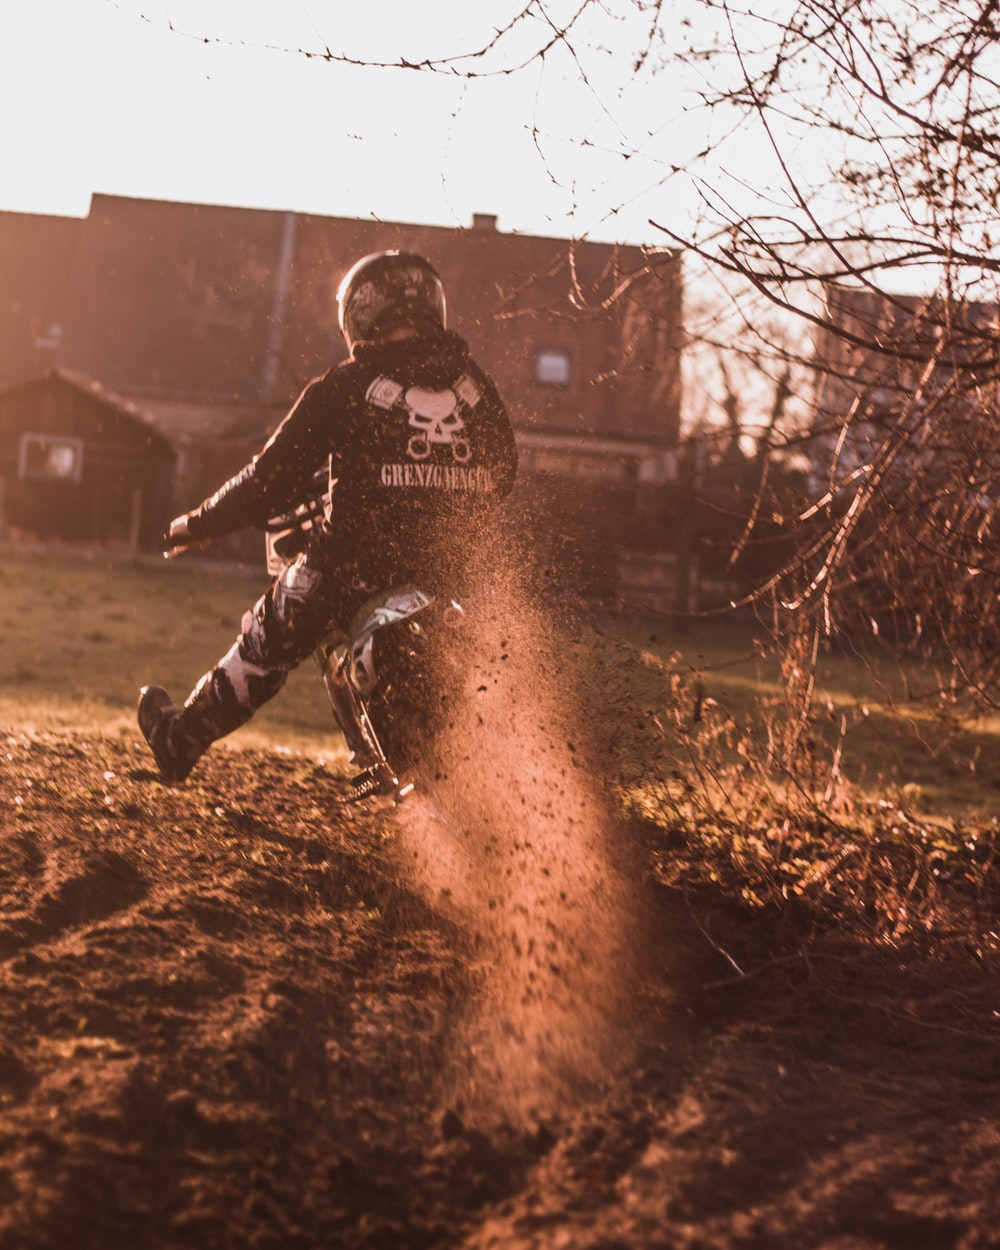 person riding dirt bike during daytime